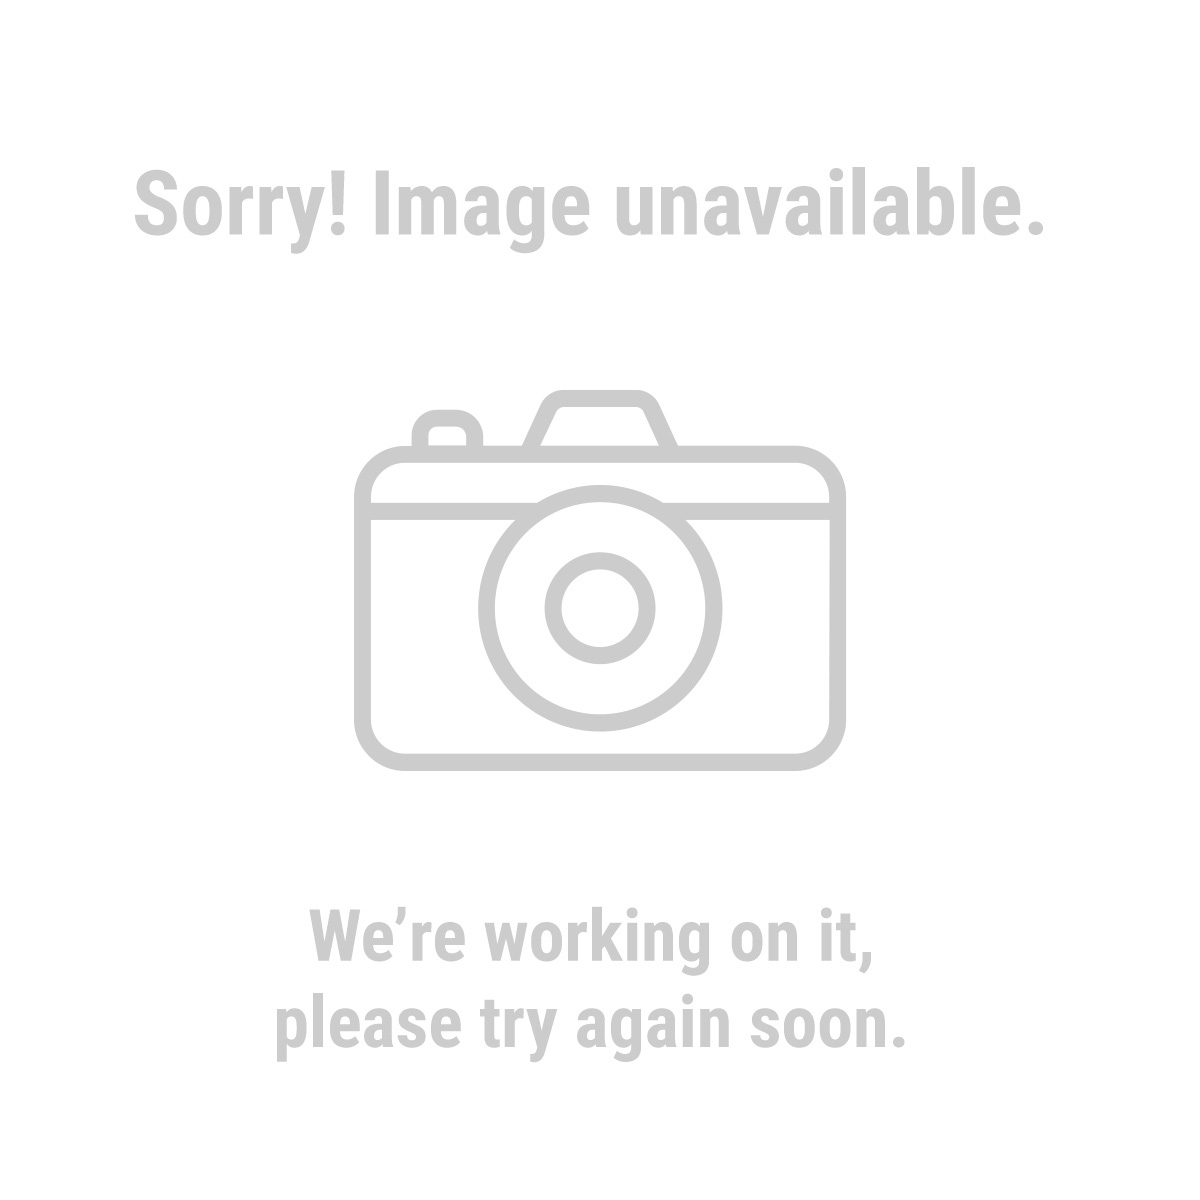 "Haul Master Automotive 92470 5.3"" x 12"" 6 Ply Tire with 5 Lug Rim"